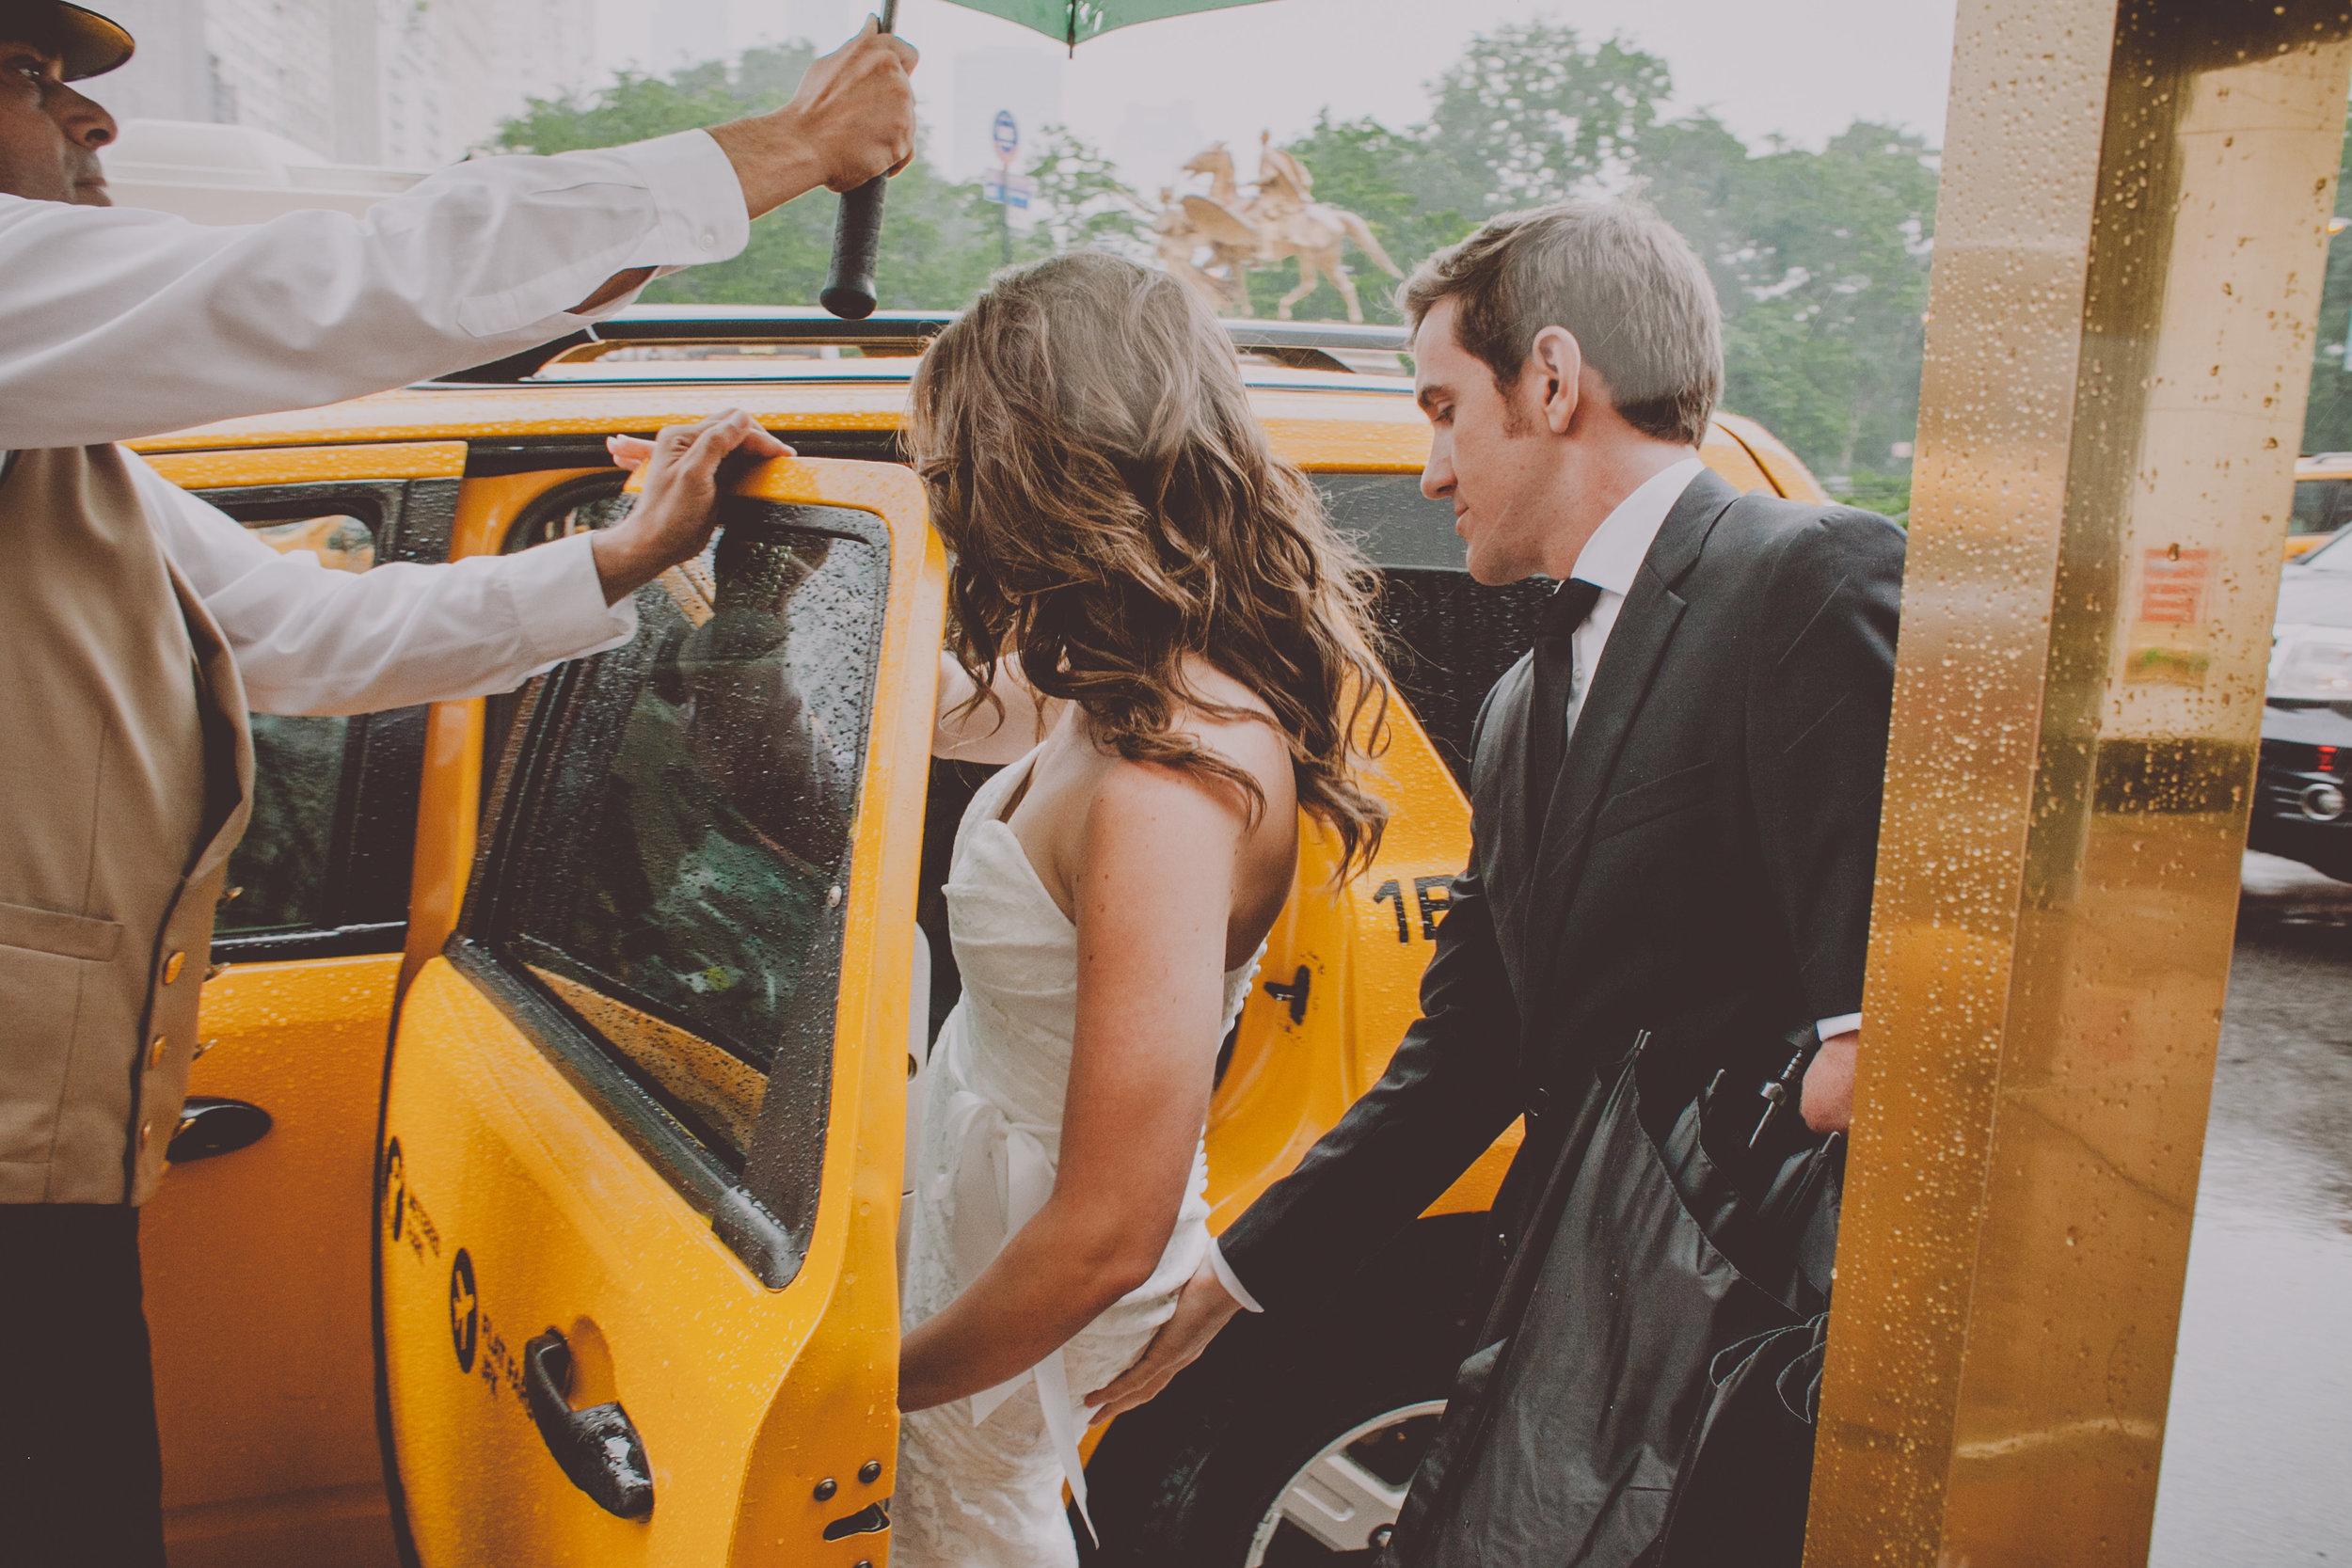 Central_Park_Rainy_Wedding_NYC_E423lopement.JPG